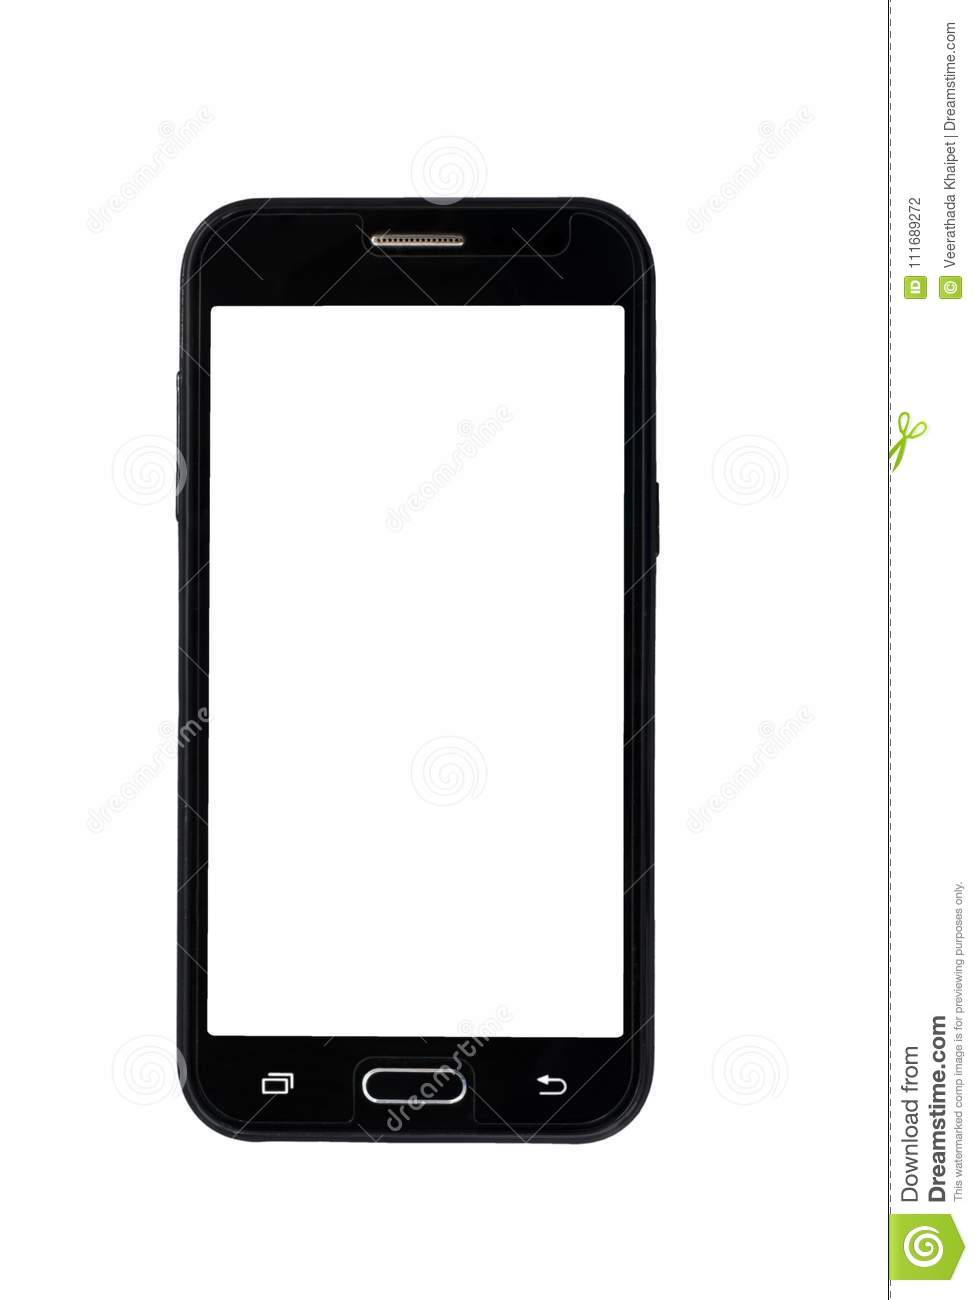 Blank mobile smart phone isolated on white background with clipping path